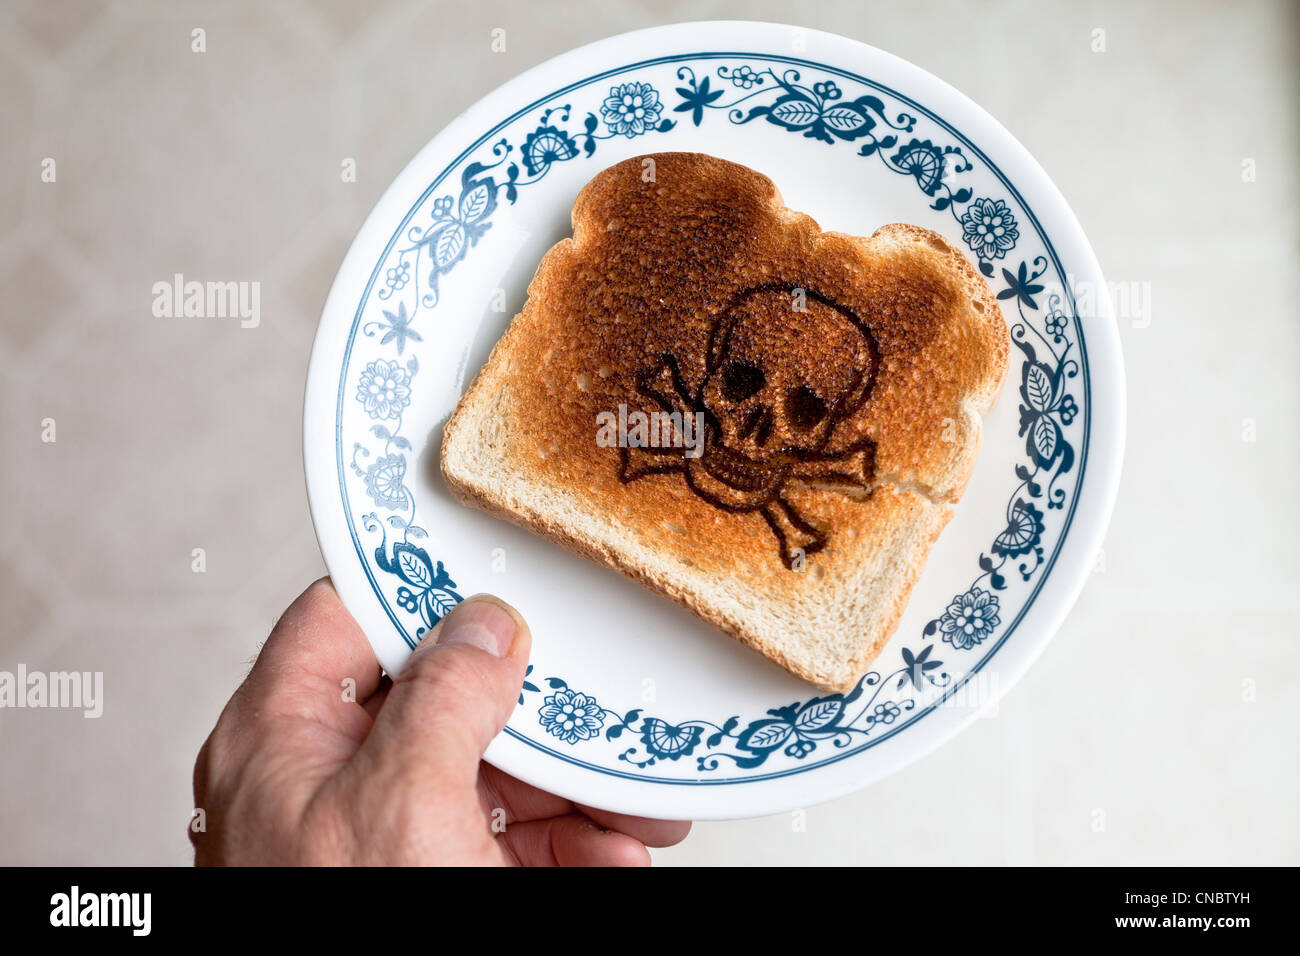 skull and crossed bones burned into a piece of toast on a plate. celiac disease Gluten Allergy - Stock Image